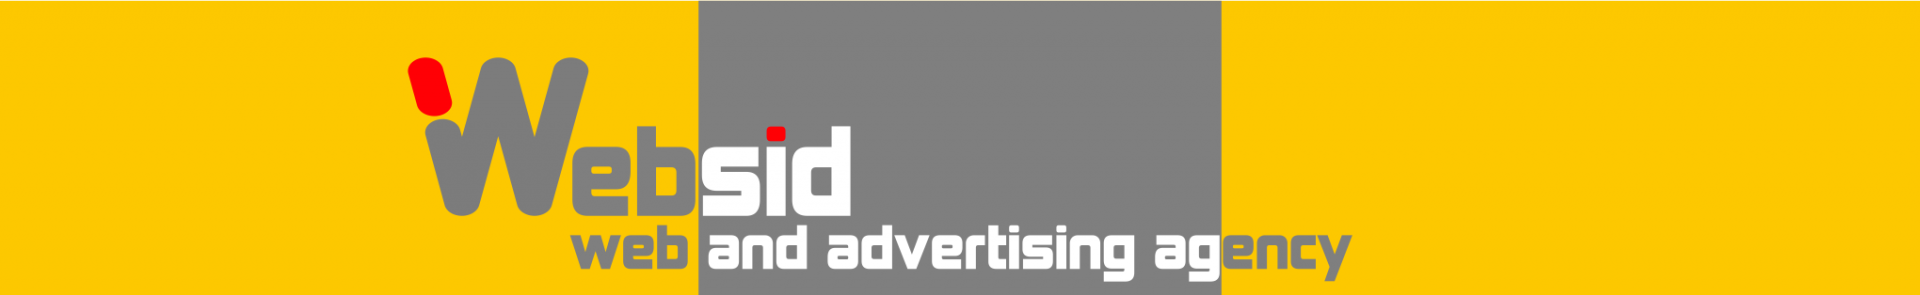 Websid - web and advertising agency